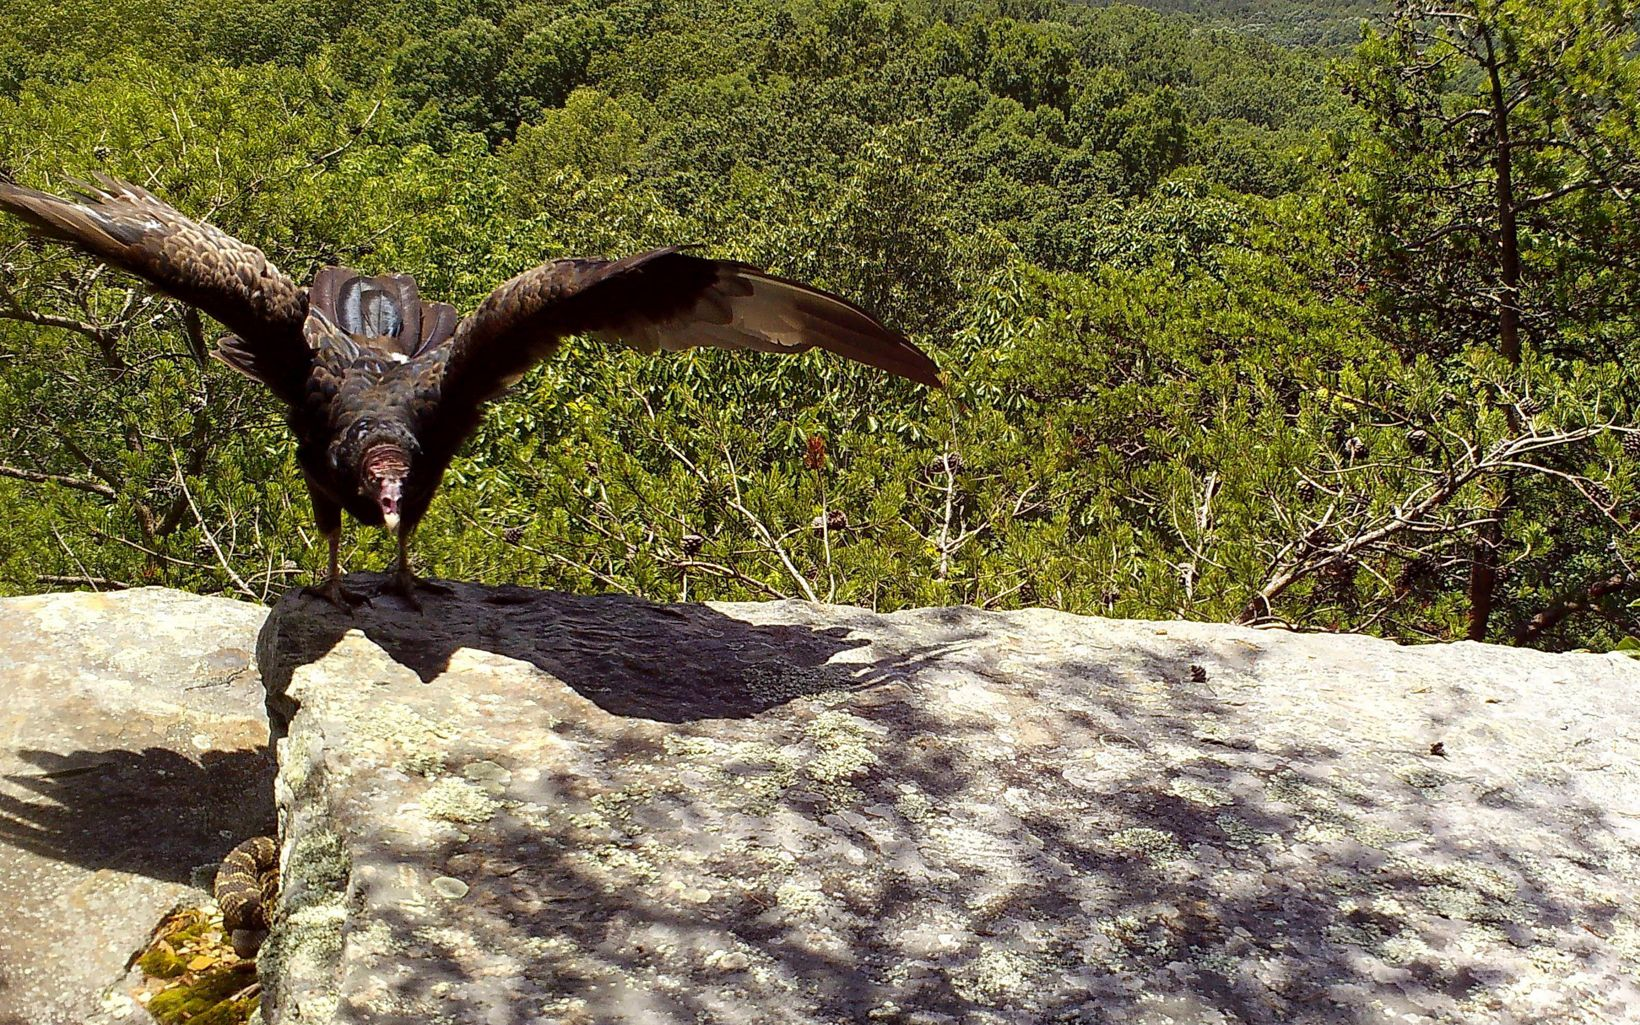 A large bird lands on a rock.